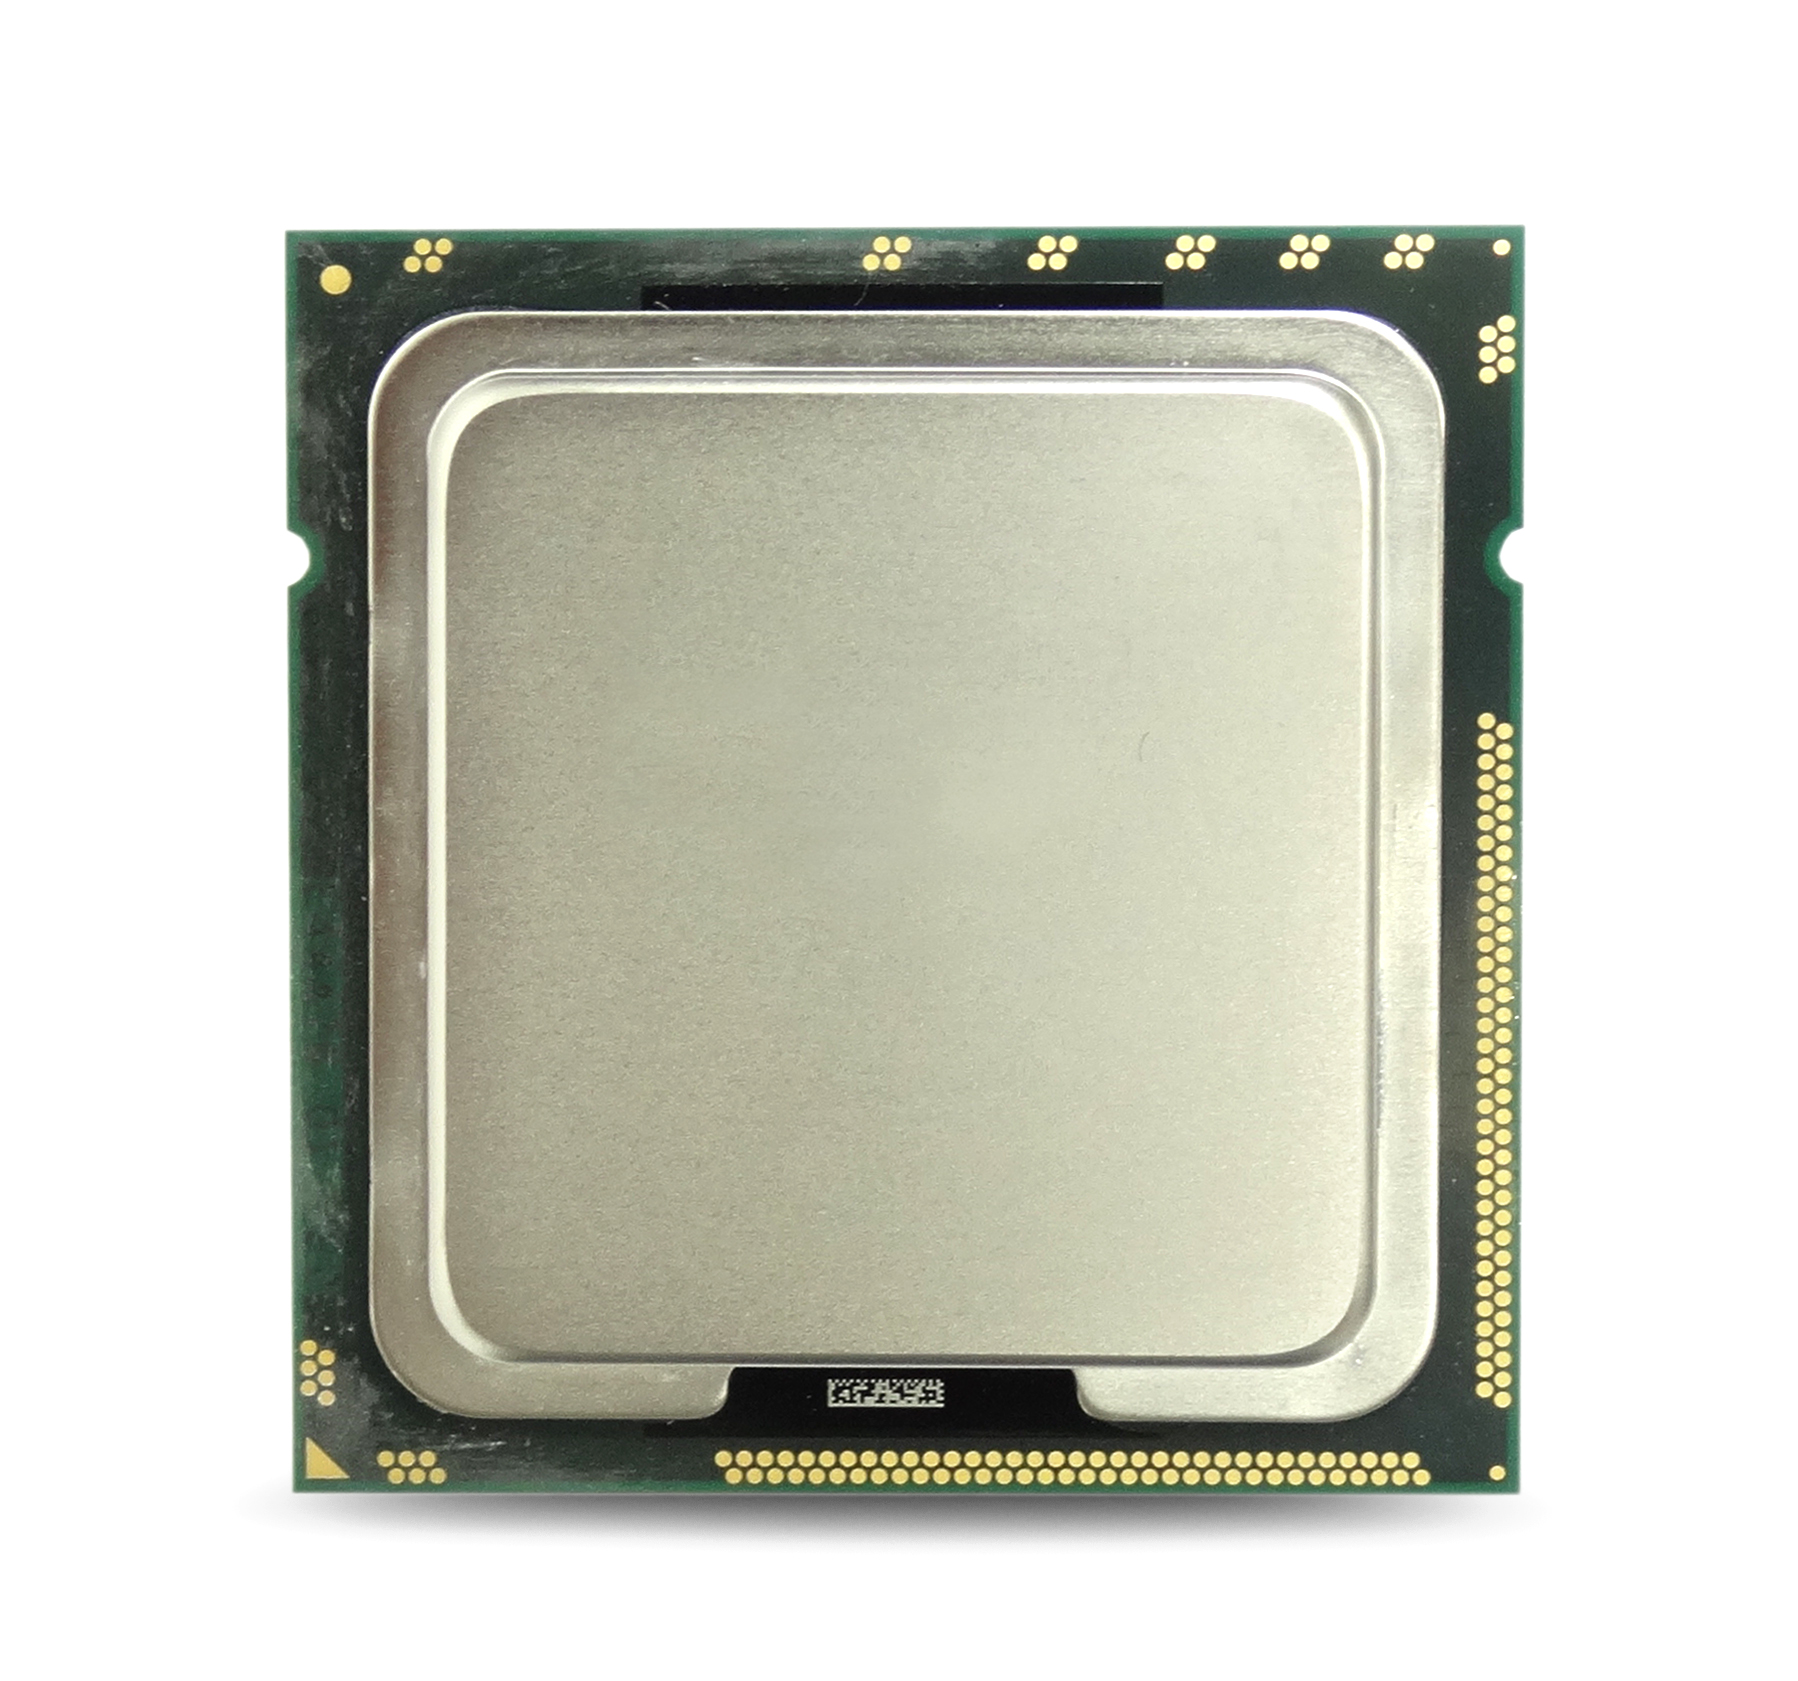 Intel Pentium E6300 2.80GHz Dual Core 2MB LGA775 Processor (SLGU9)